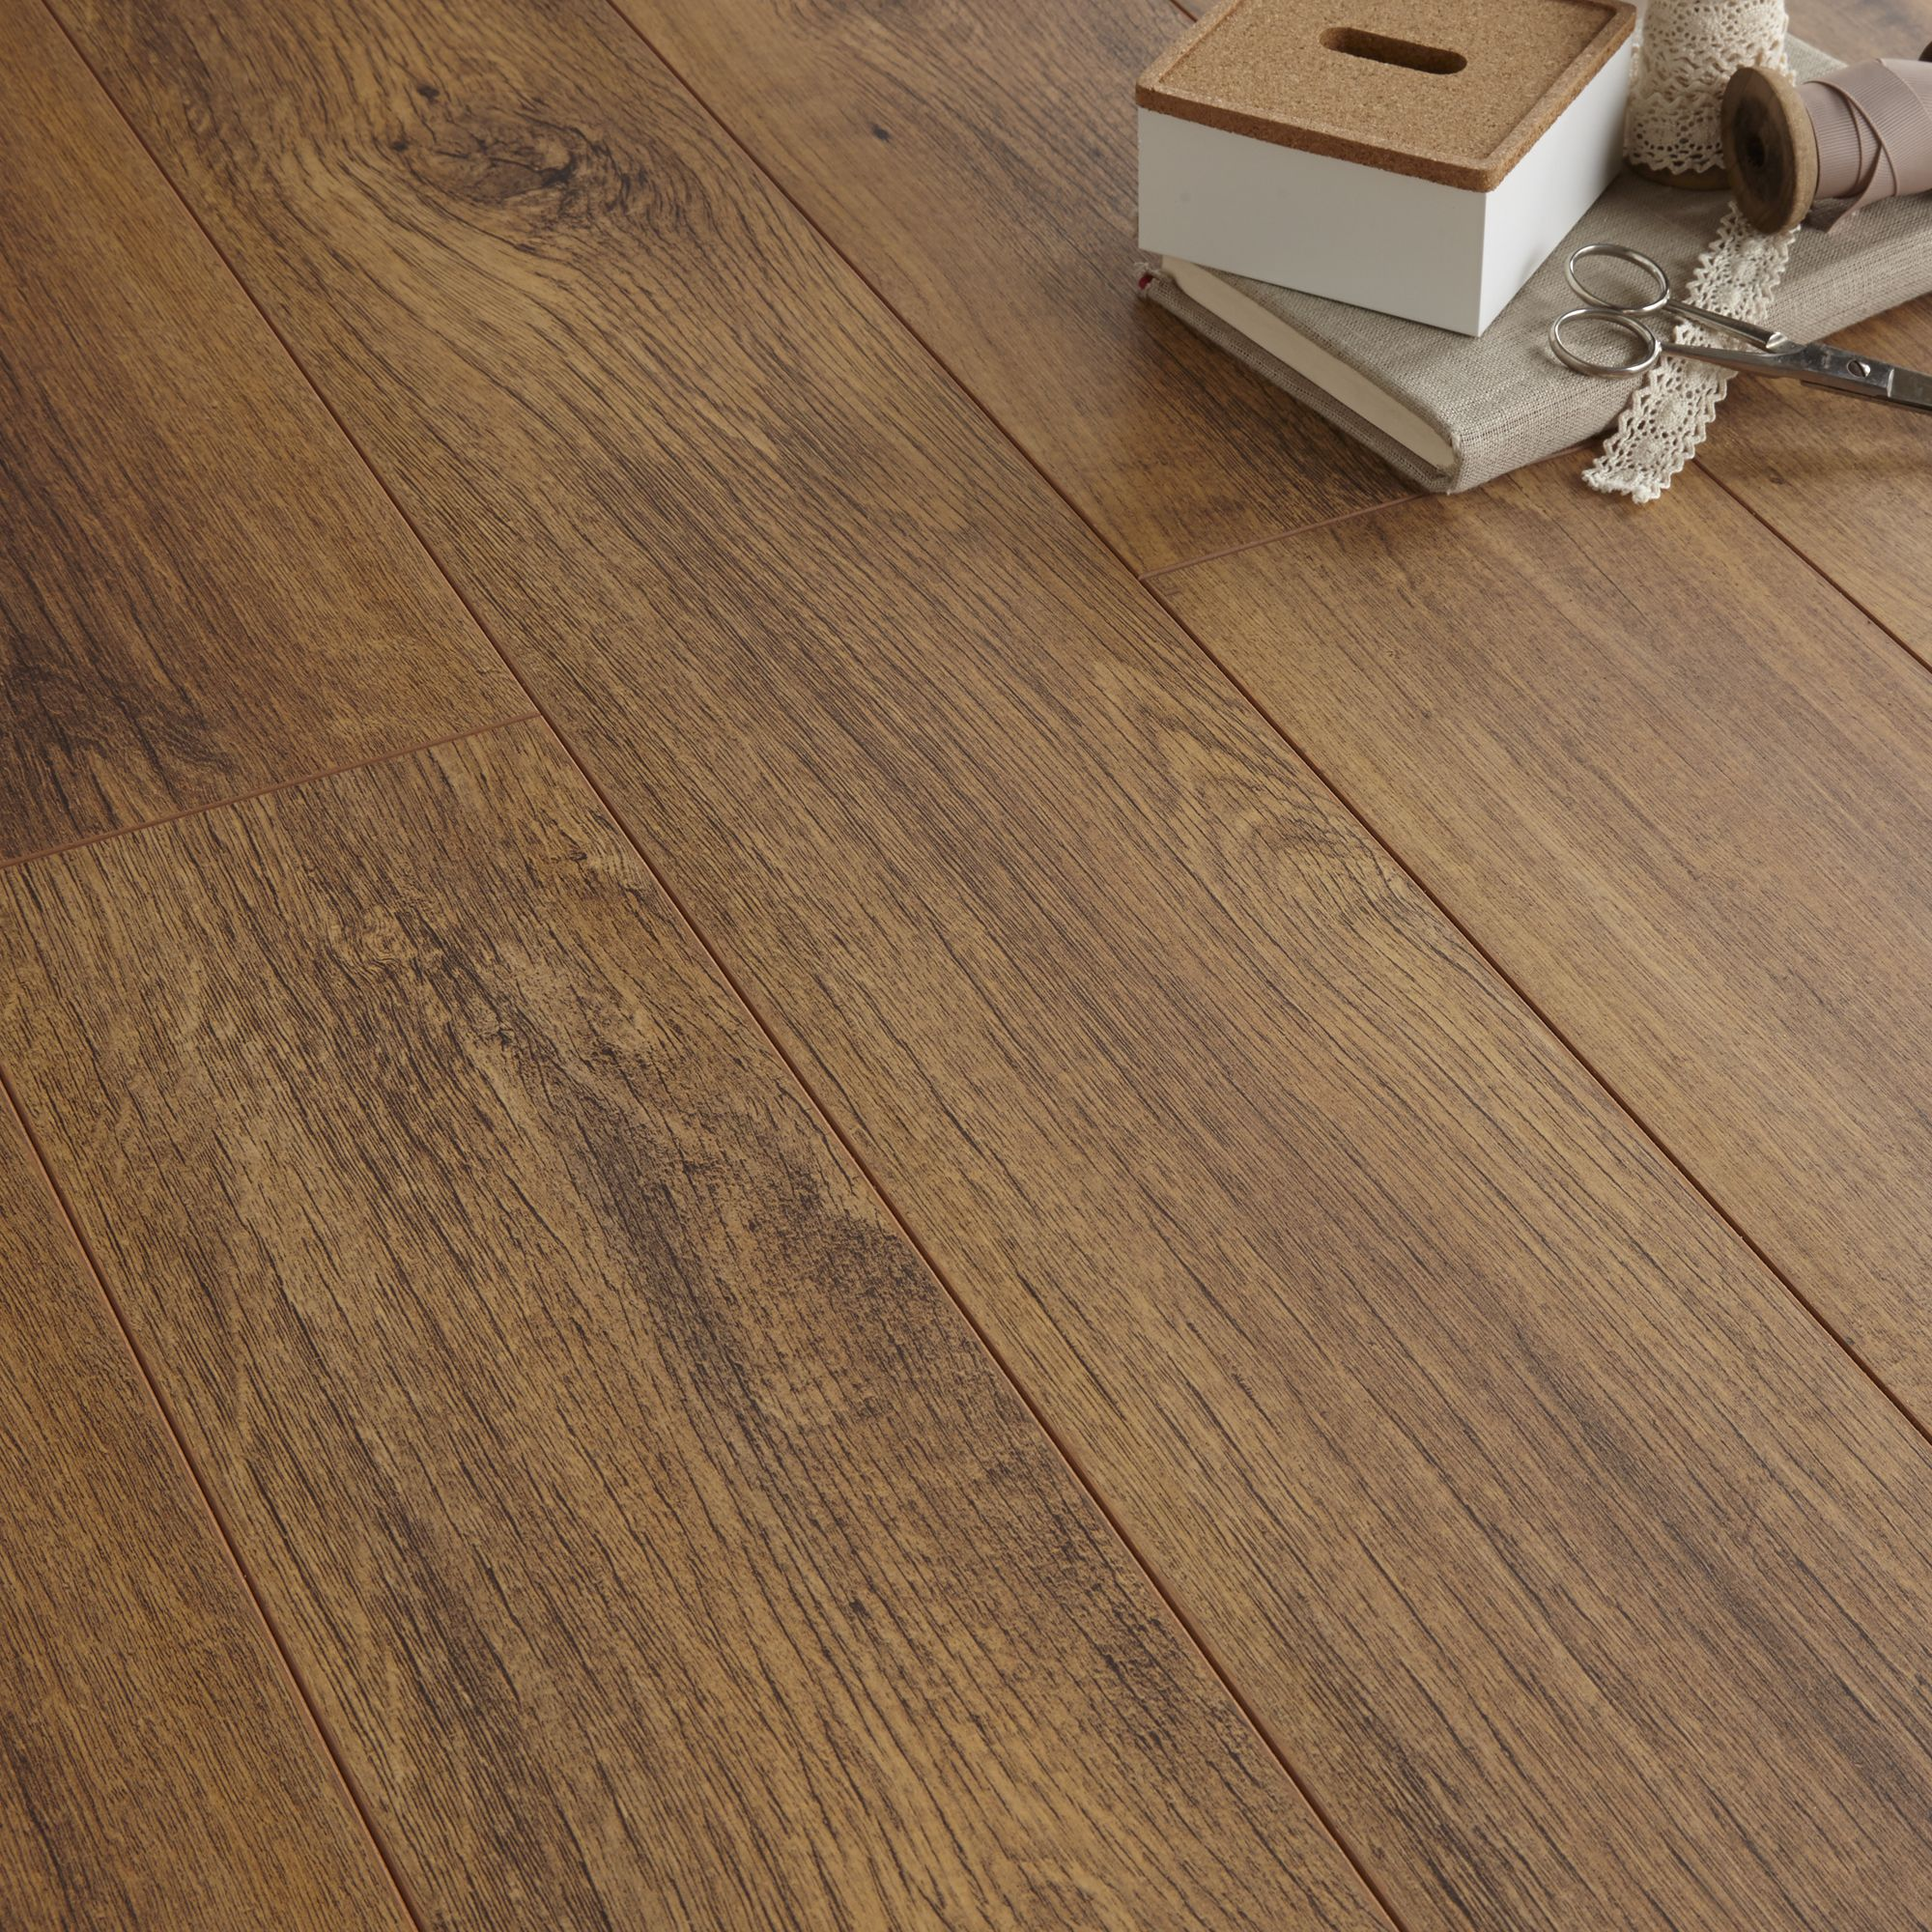 Arpeggio Tuscany Olive Effect 2 Strip Laminate Flooring 1